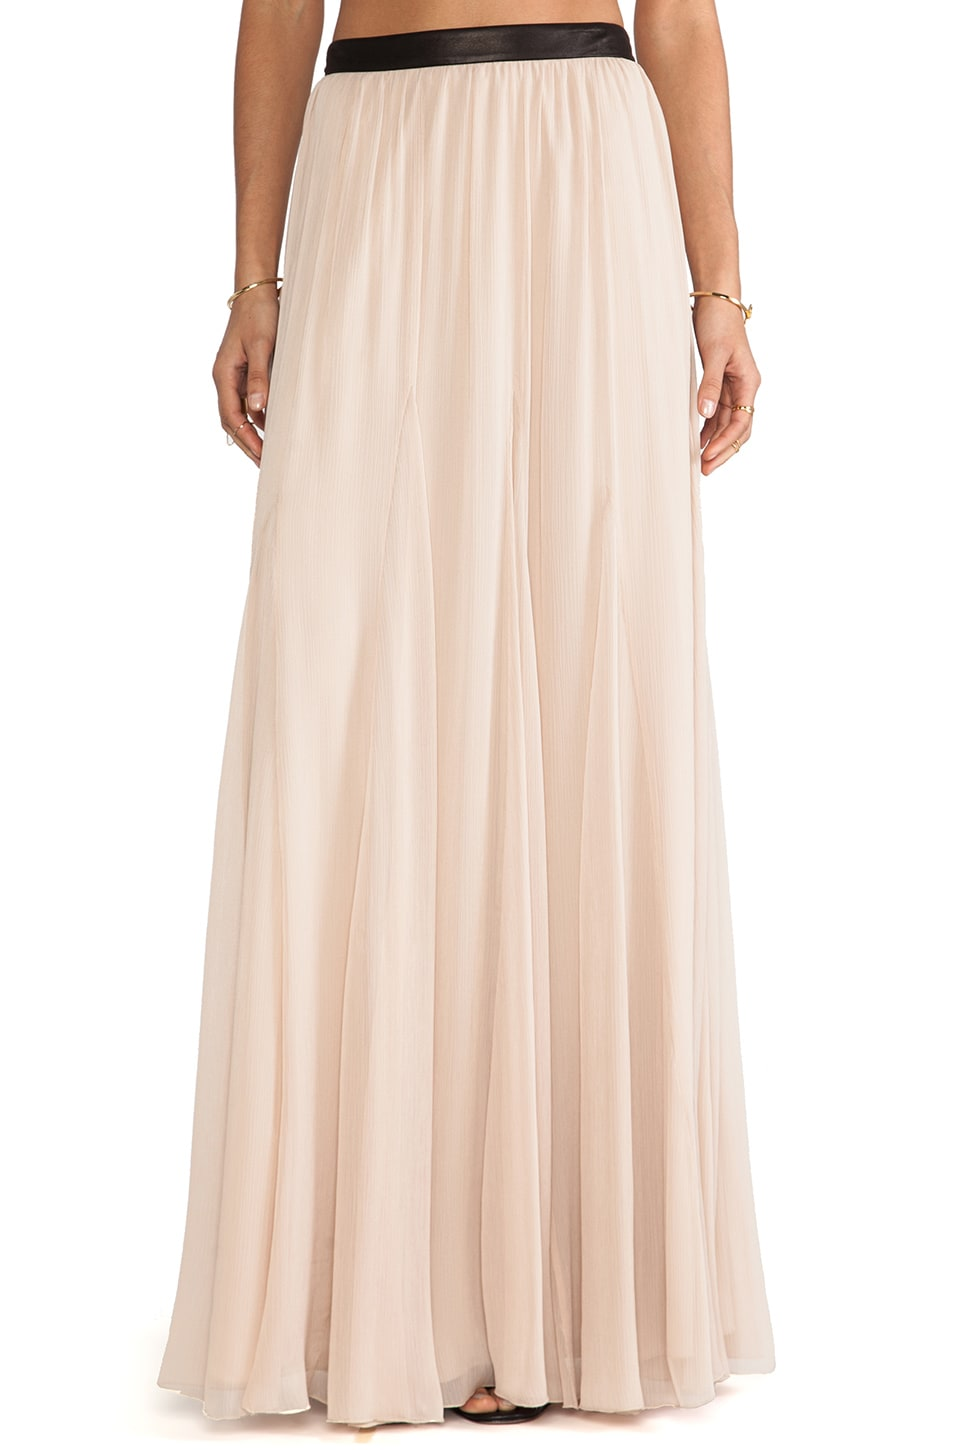 Alice + Olivia Dawn Godet Maxi Skirt in Nude